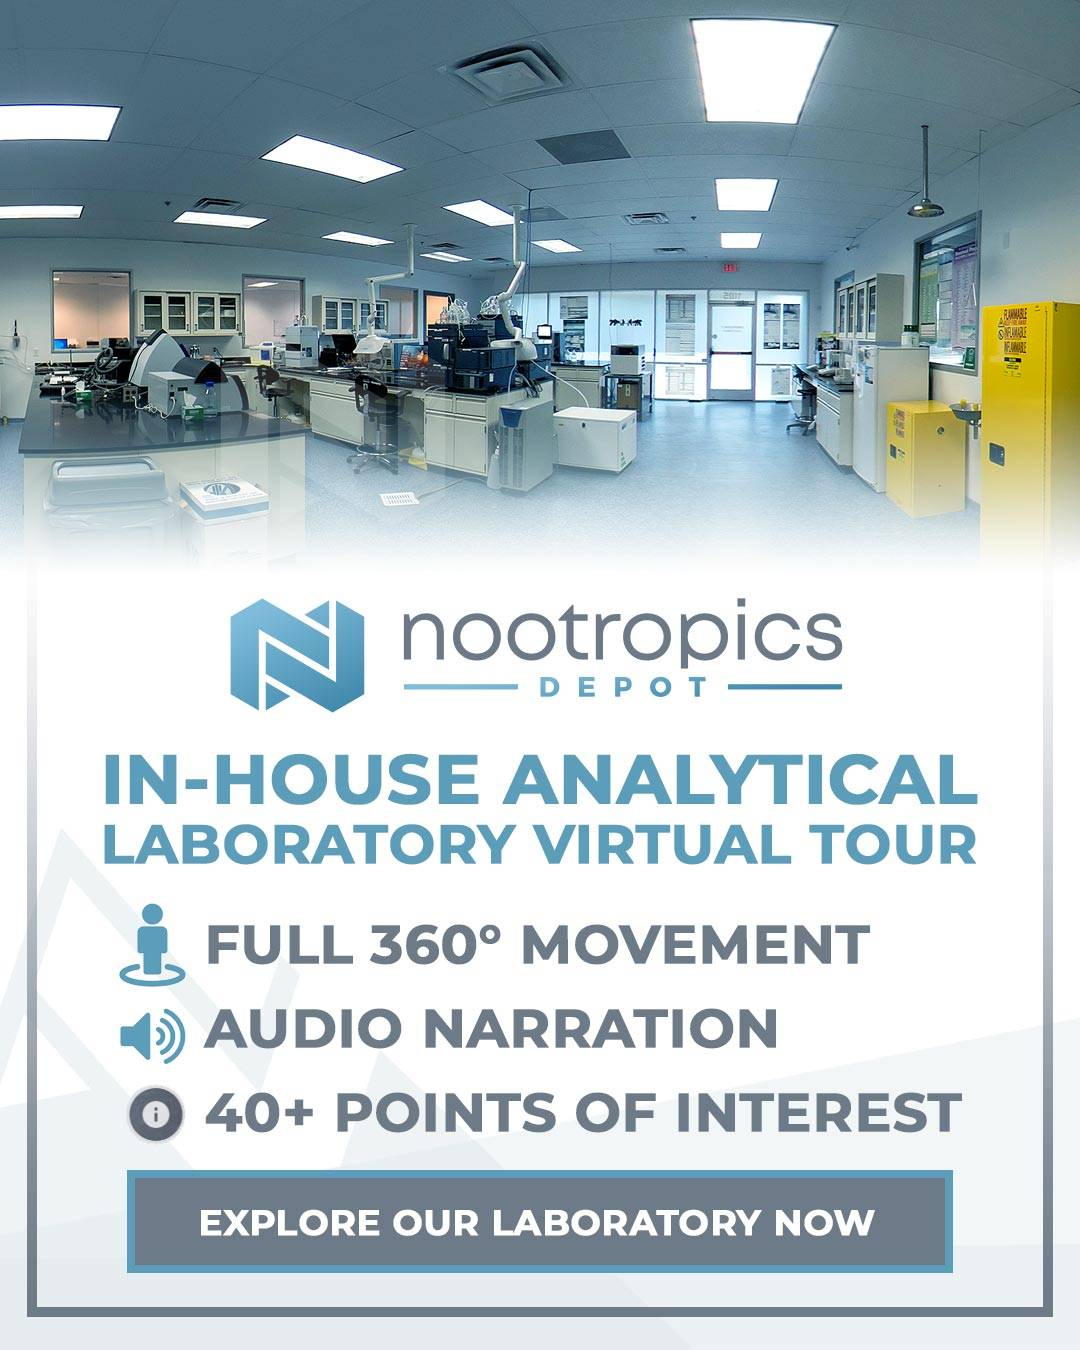 Take A Tour Of Our In-House Laboratory